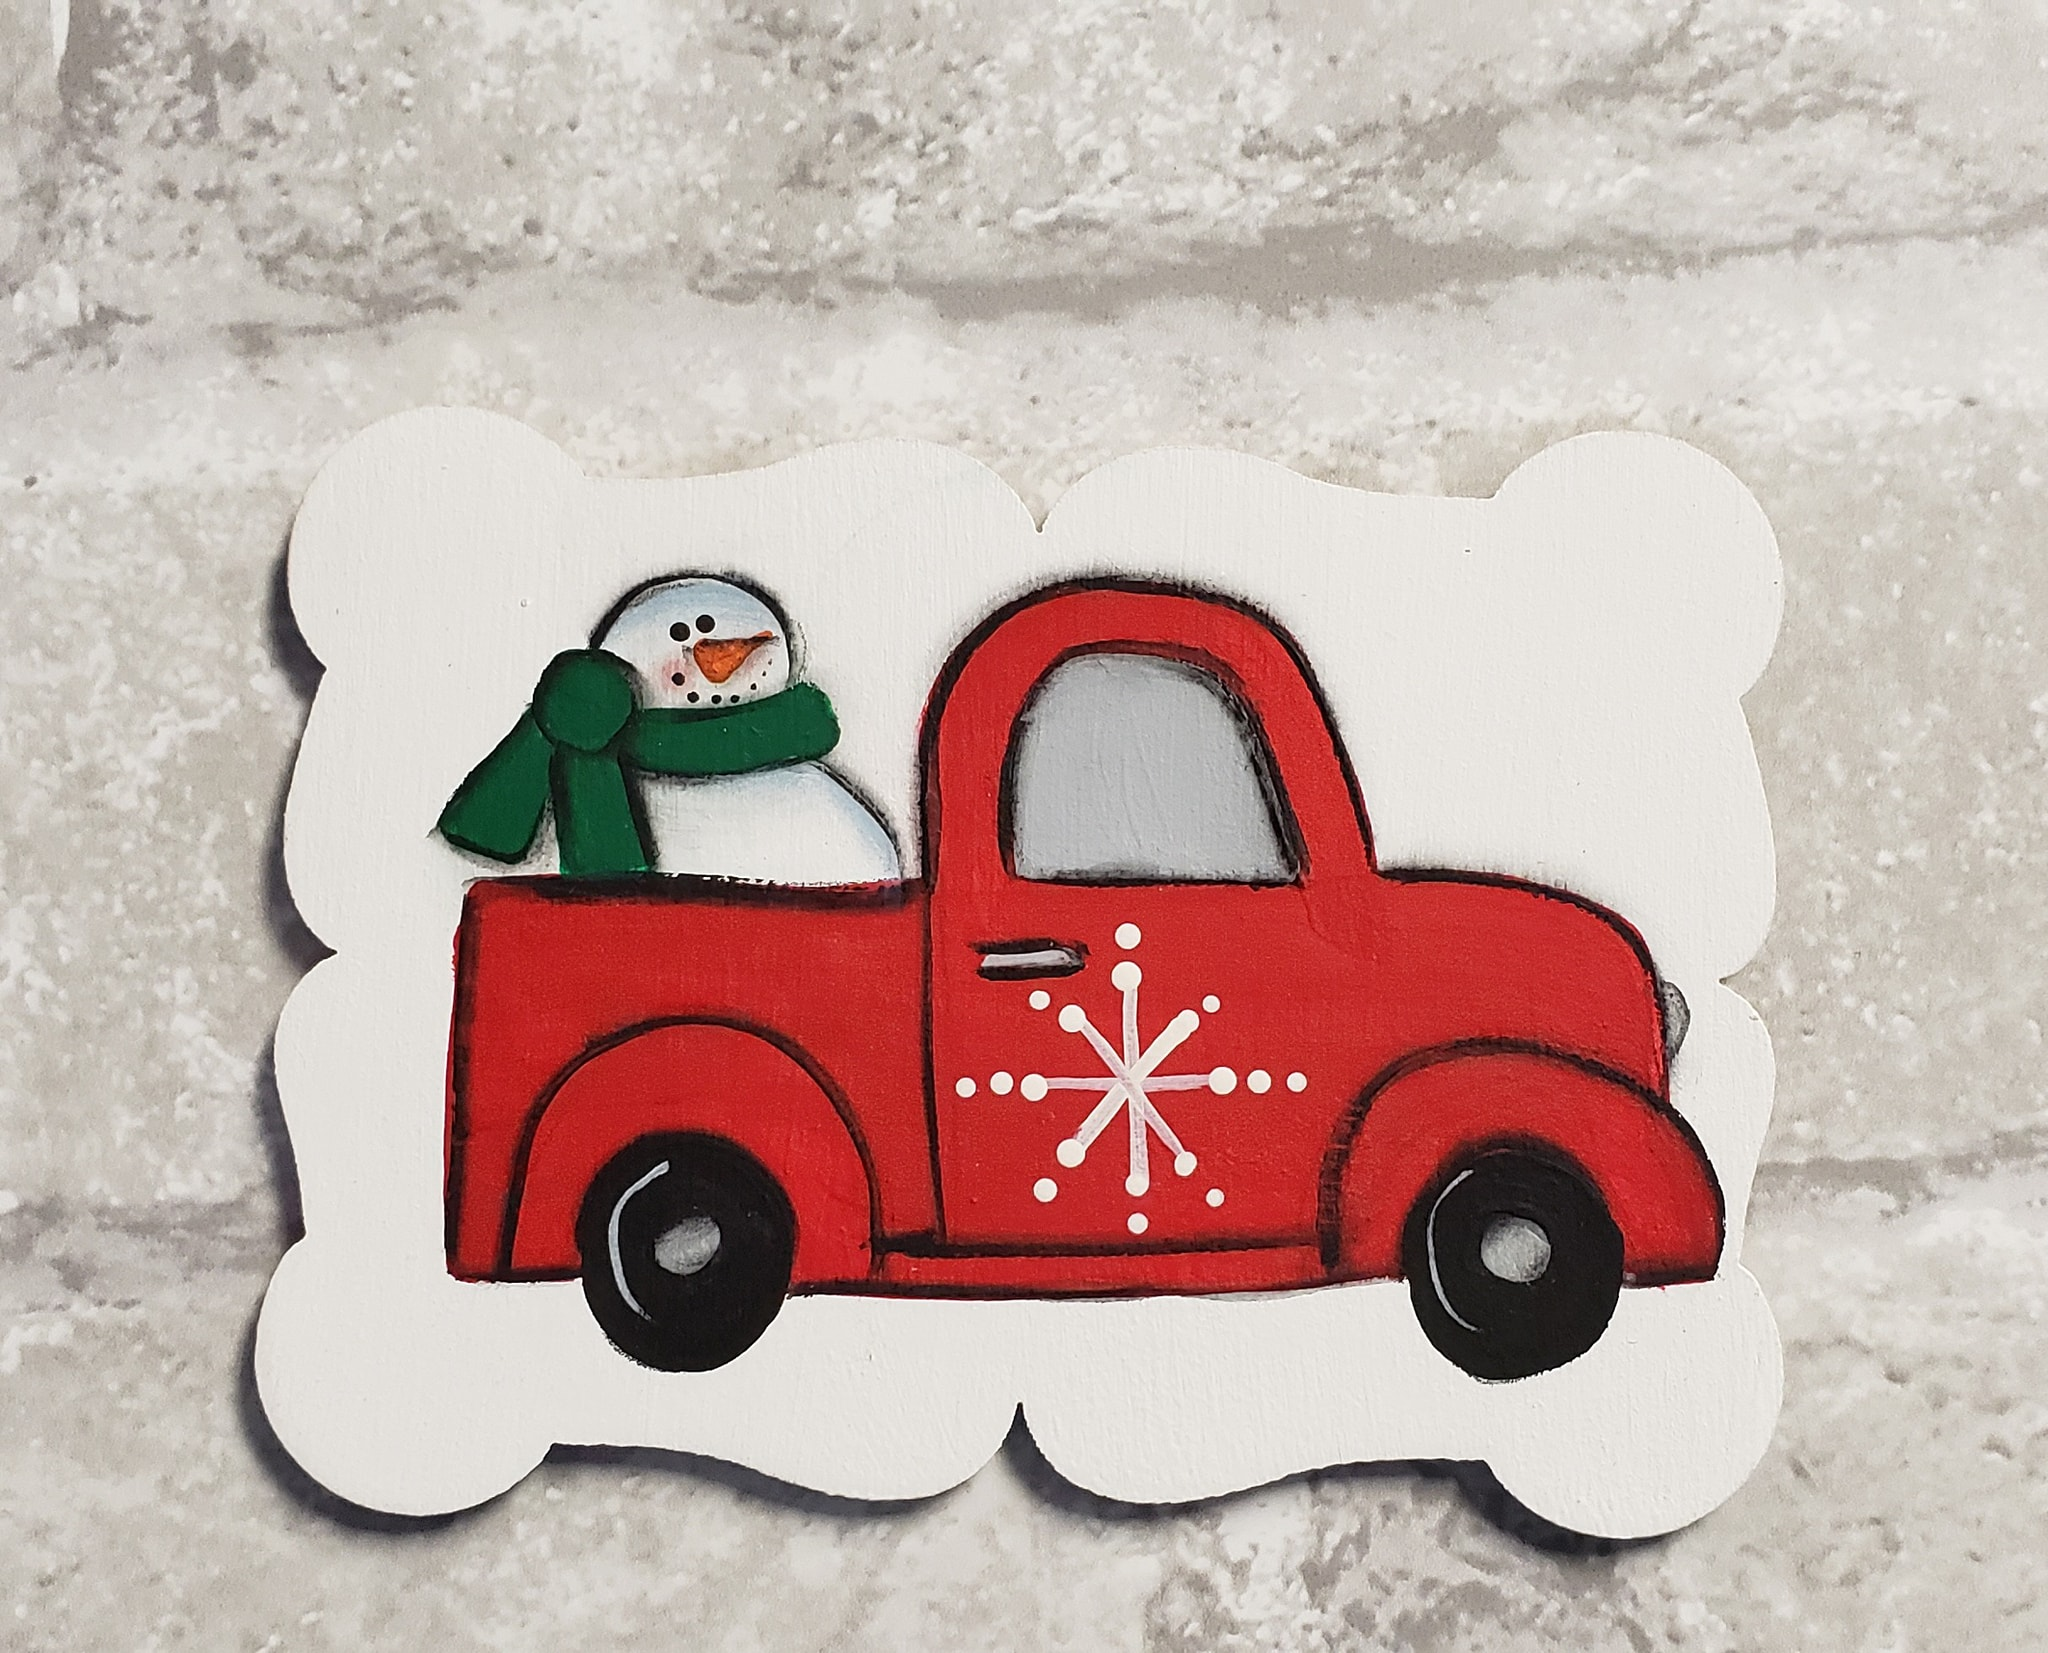 Shop for Local Holiday Items Safely at the Drive-Through Winter Farmers' and Makers' Market